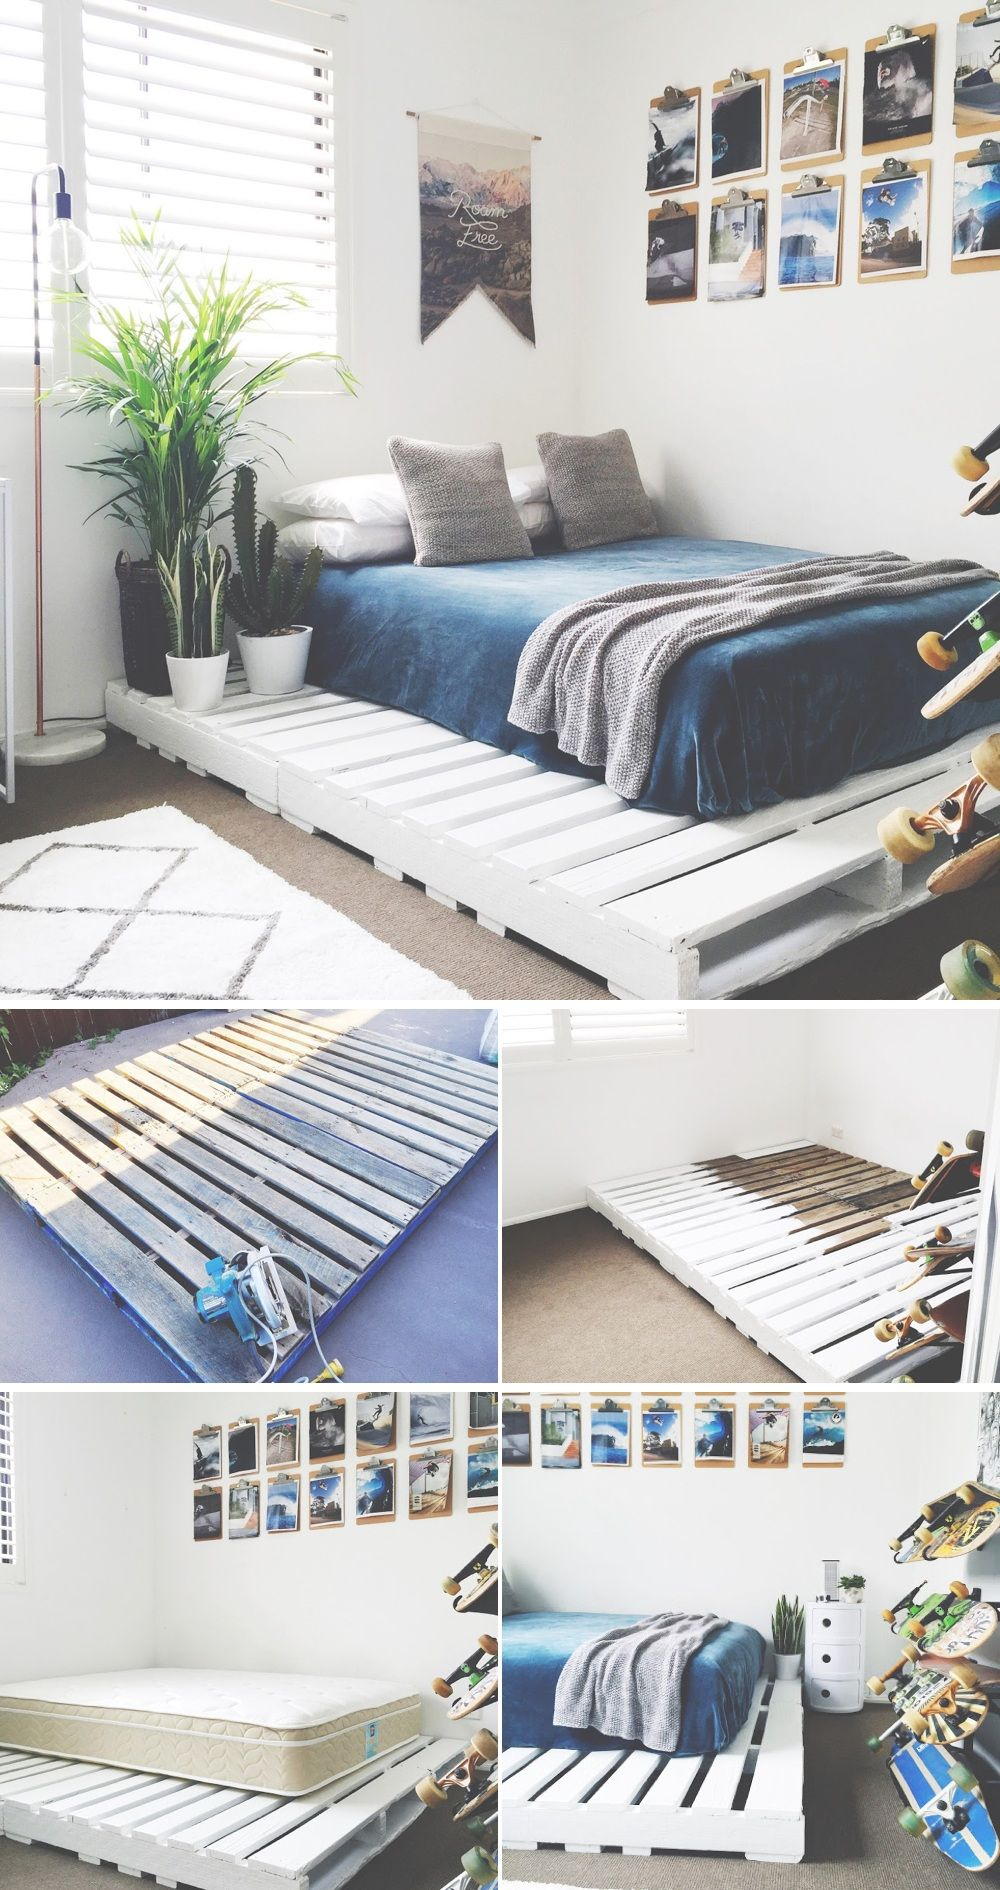 Comment Faire Un Lit En Palette 36 Easy Diy Bed Frame Projects To Upgrade Your Bedroom Diy Home